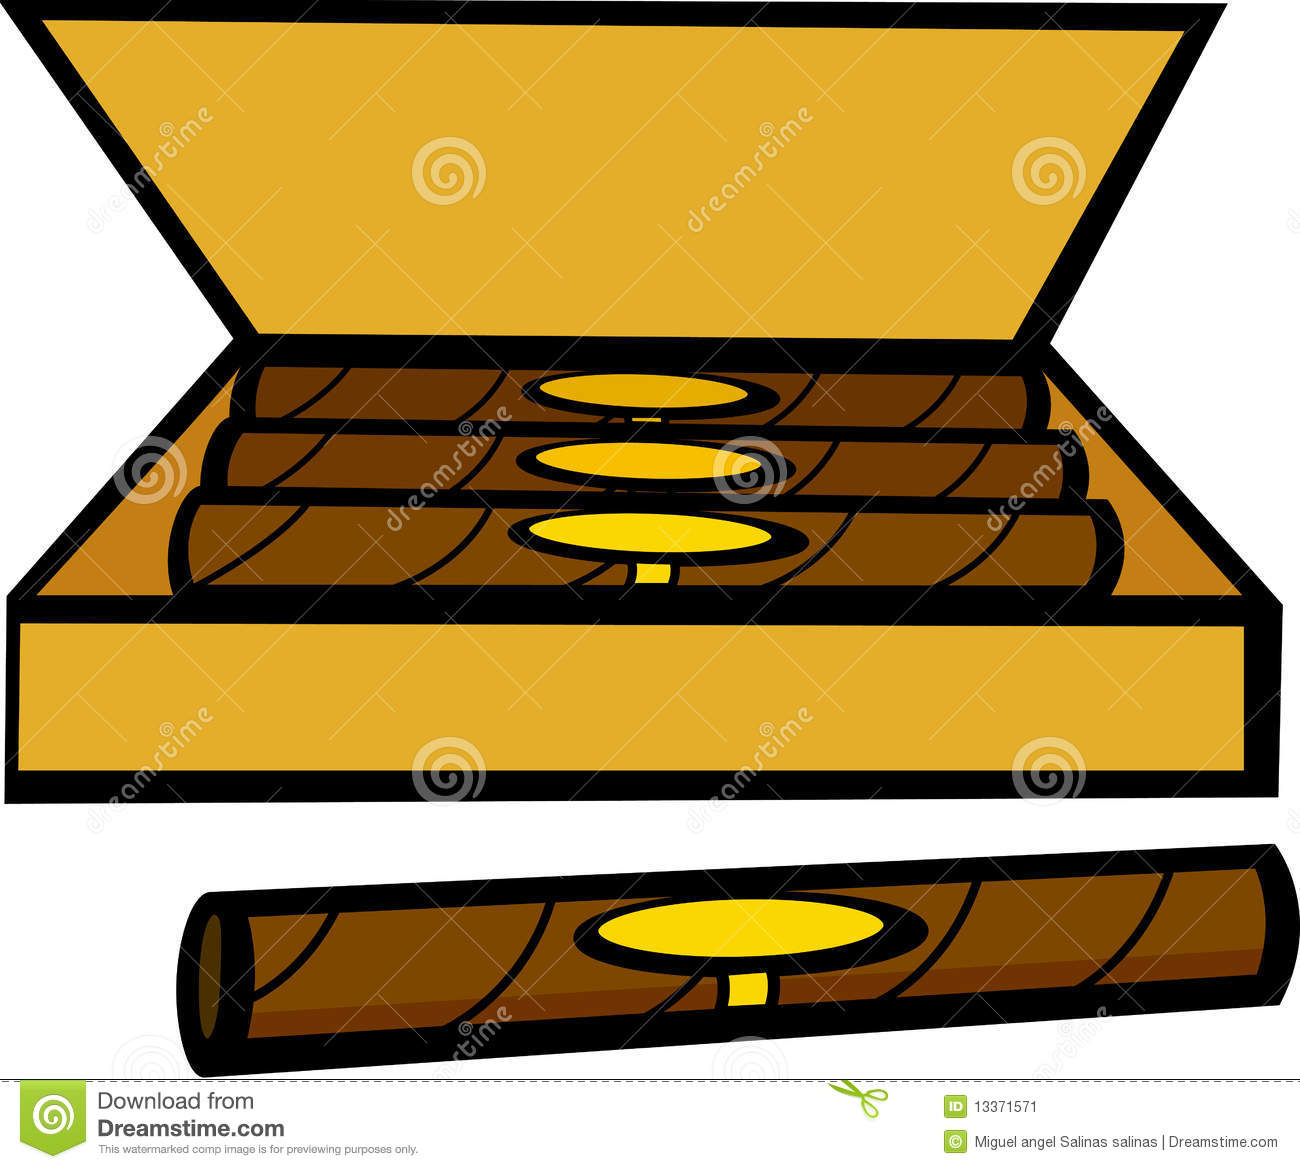 Clipart cigar box.